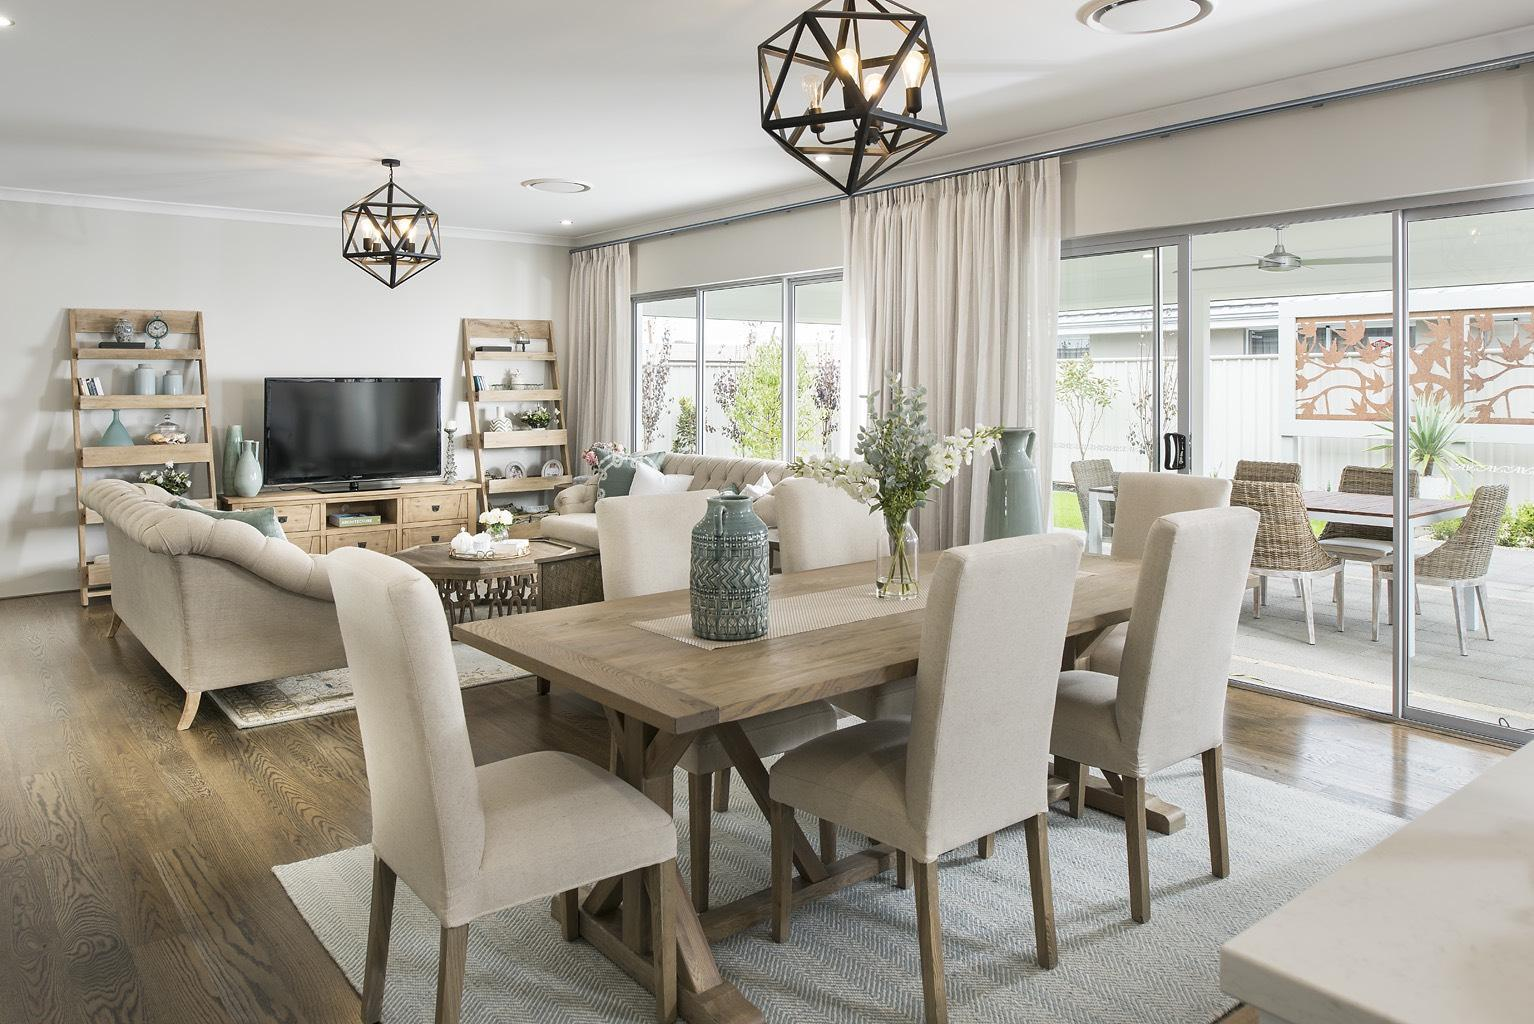 Choosing Your Future Home Design Can Often Be A Daunting Process. Have A  Read Through The Following Five Points We Feel Can Help To Determine Which  Design ...